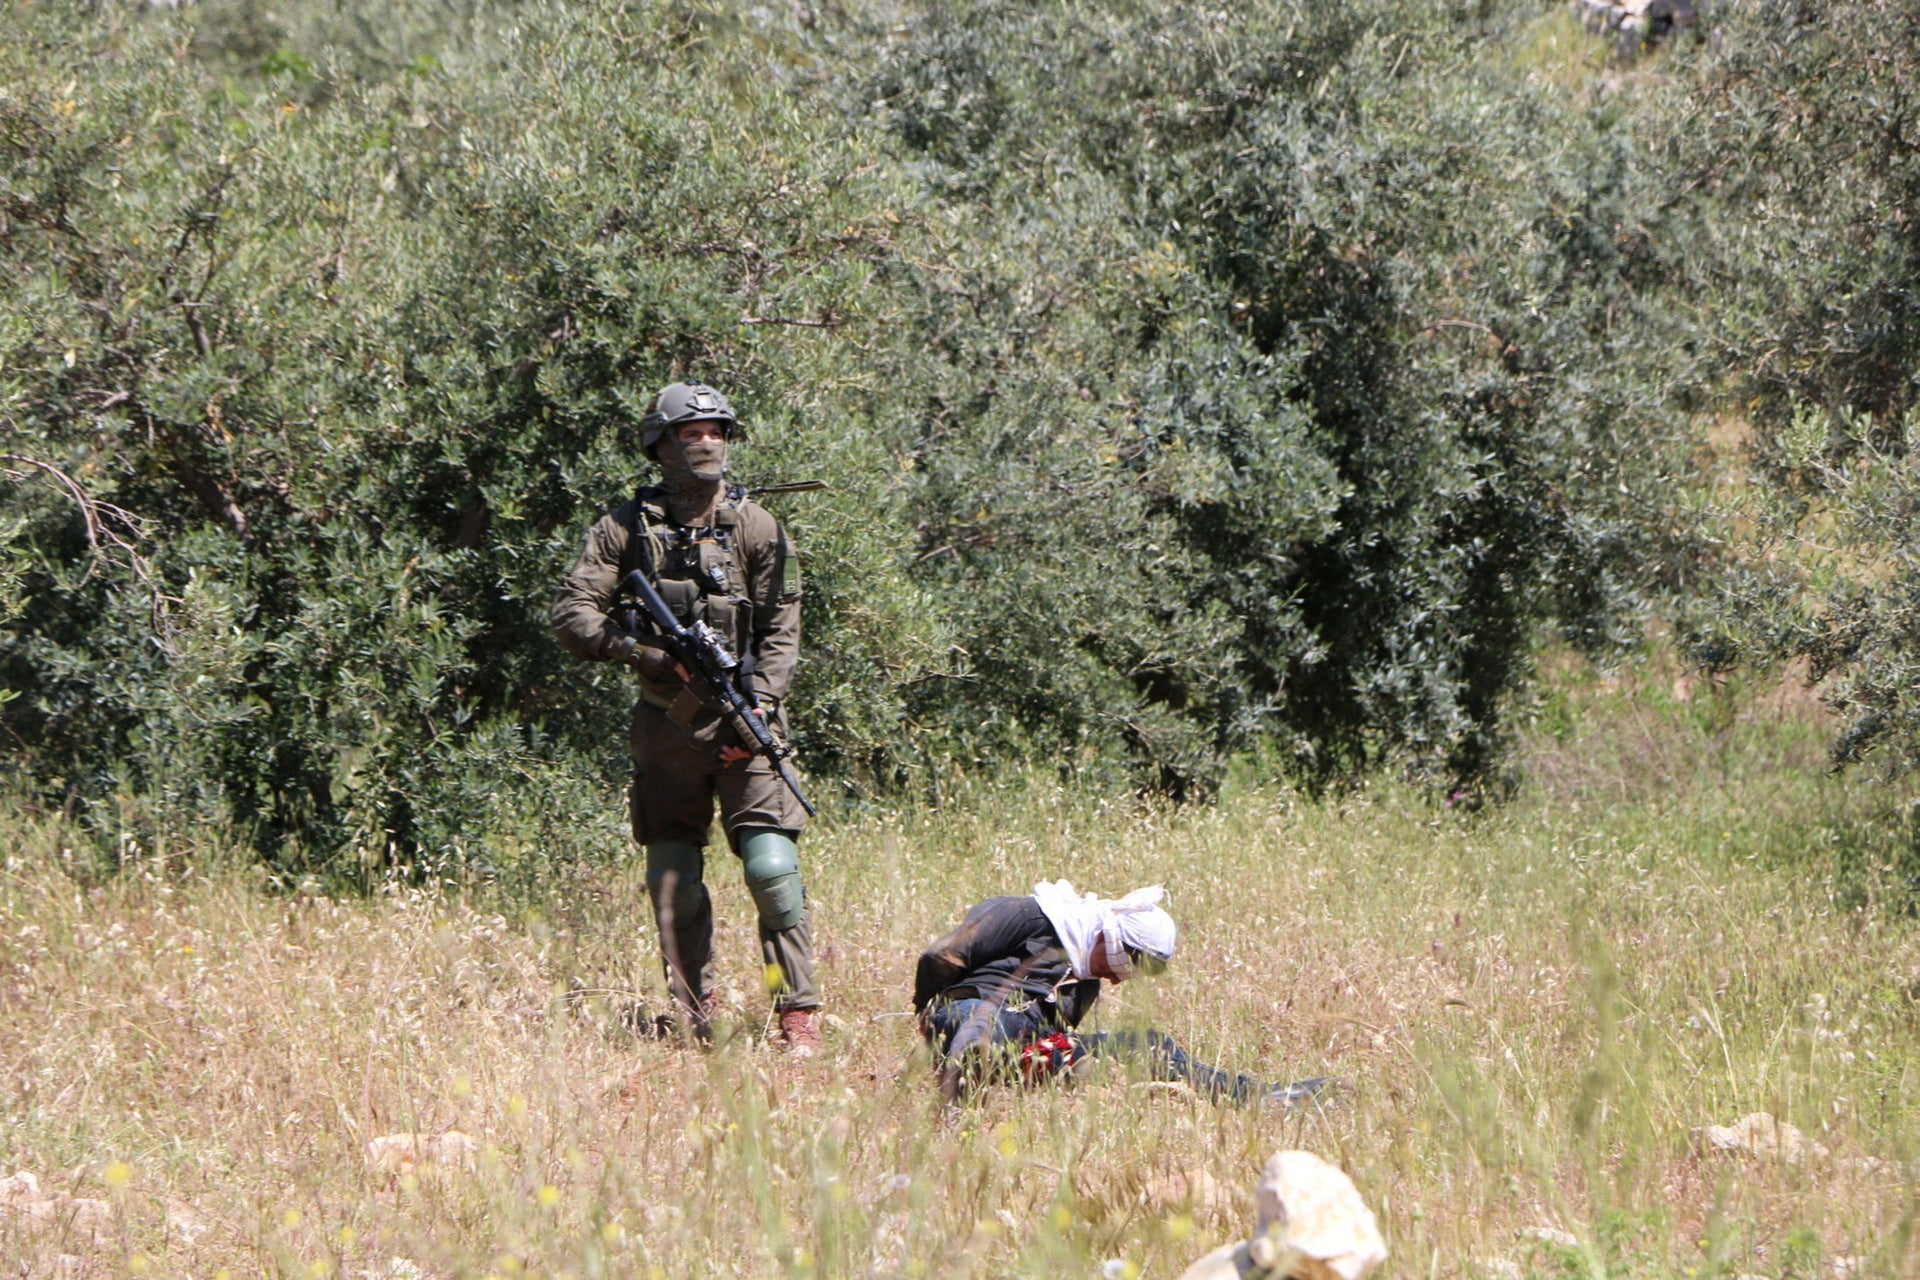 Palestinian teen Osama Hajajeh bounded and blindfolded by Israeli soldiers, Tuqu, April 18, 2019.